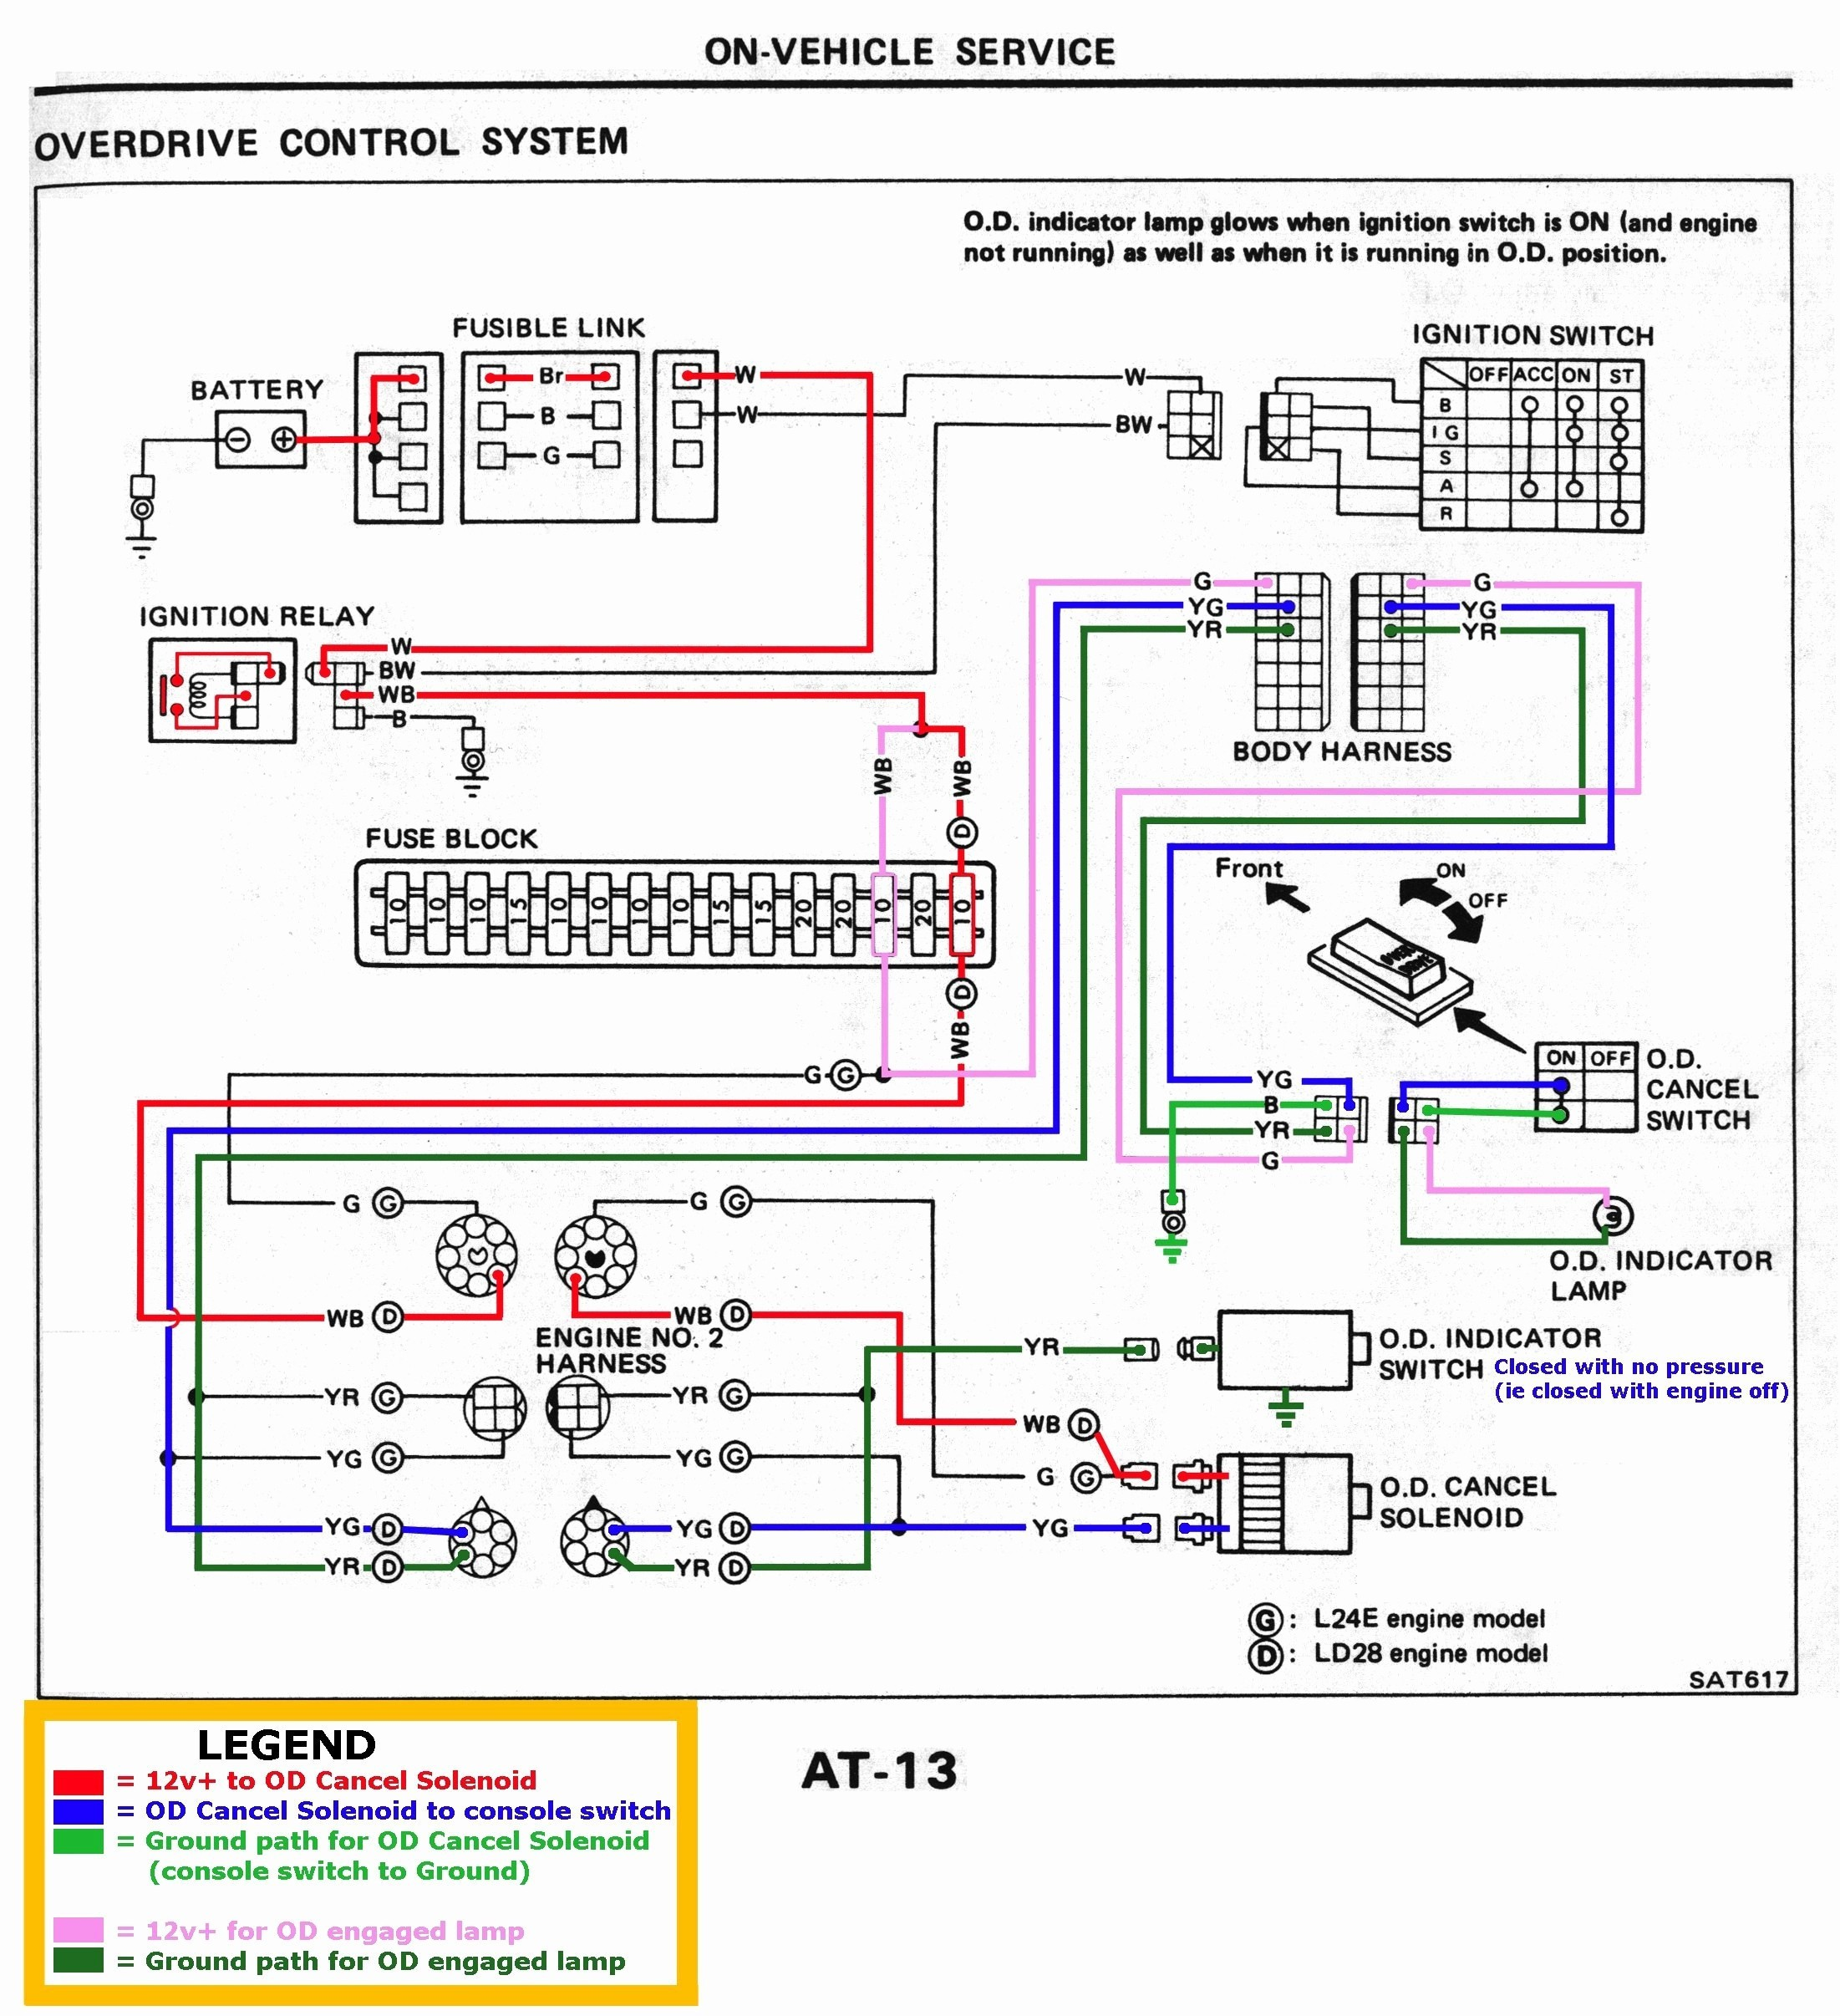 2003 lexus es300 engine diagram ignition relay switch wiring diagram simple  guide about wiring